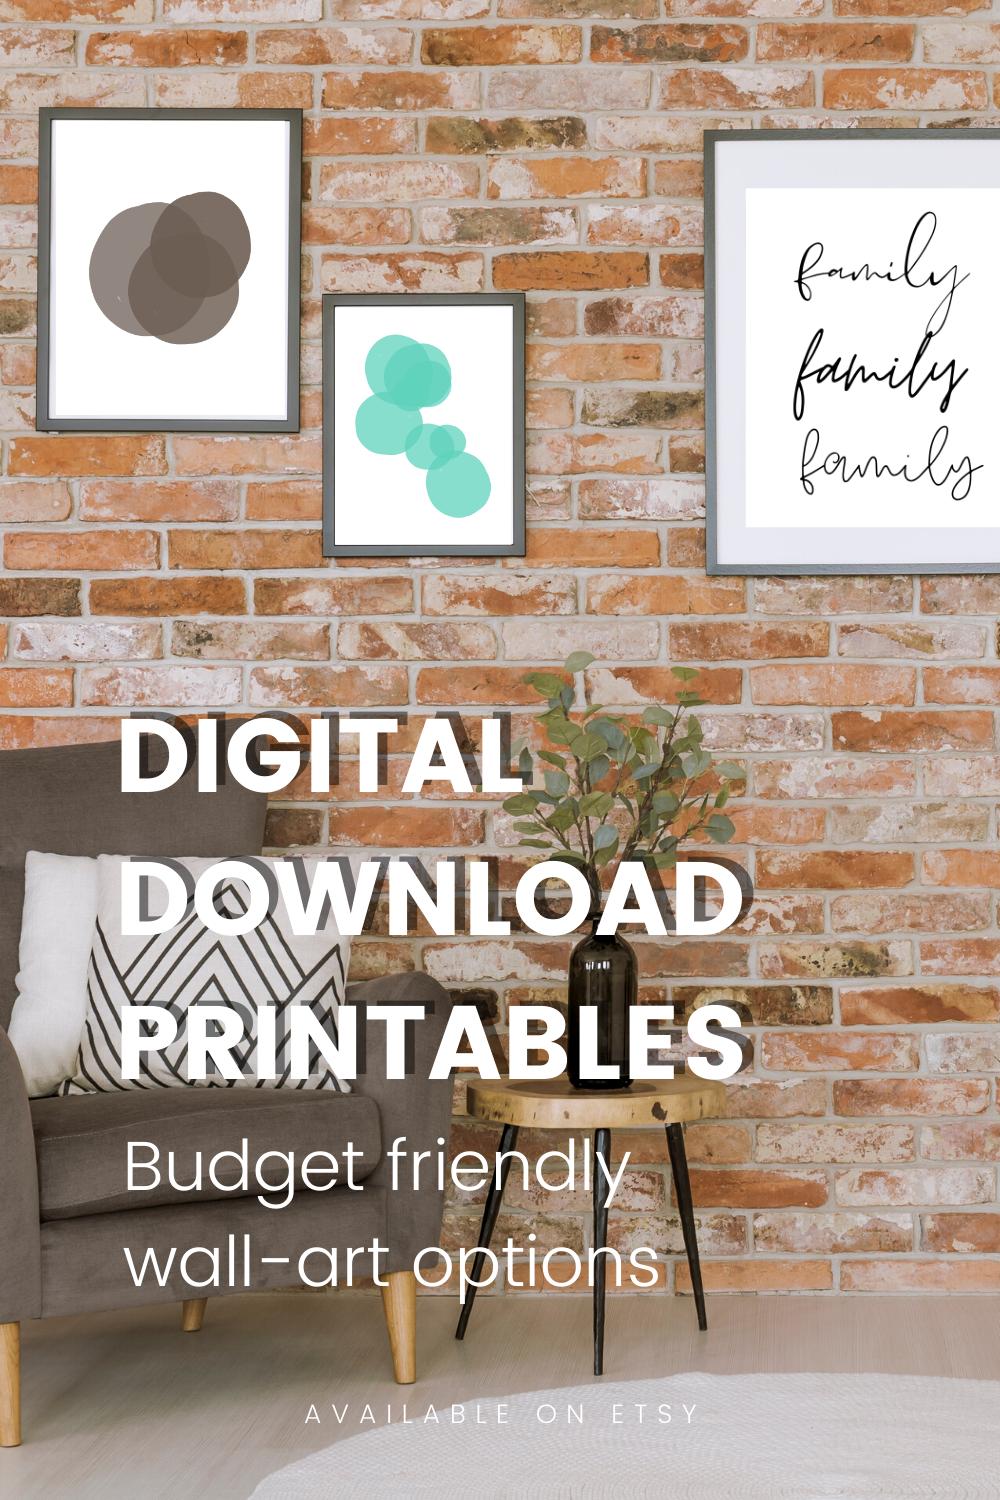 Budget friendly wall-art: Digital downloads to spice up your space  #homedecor #livingroomideas #OfficeDecor #artwork